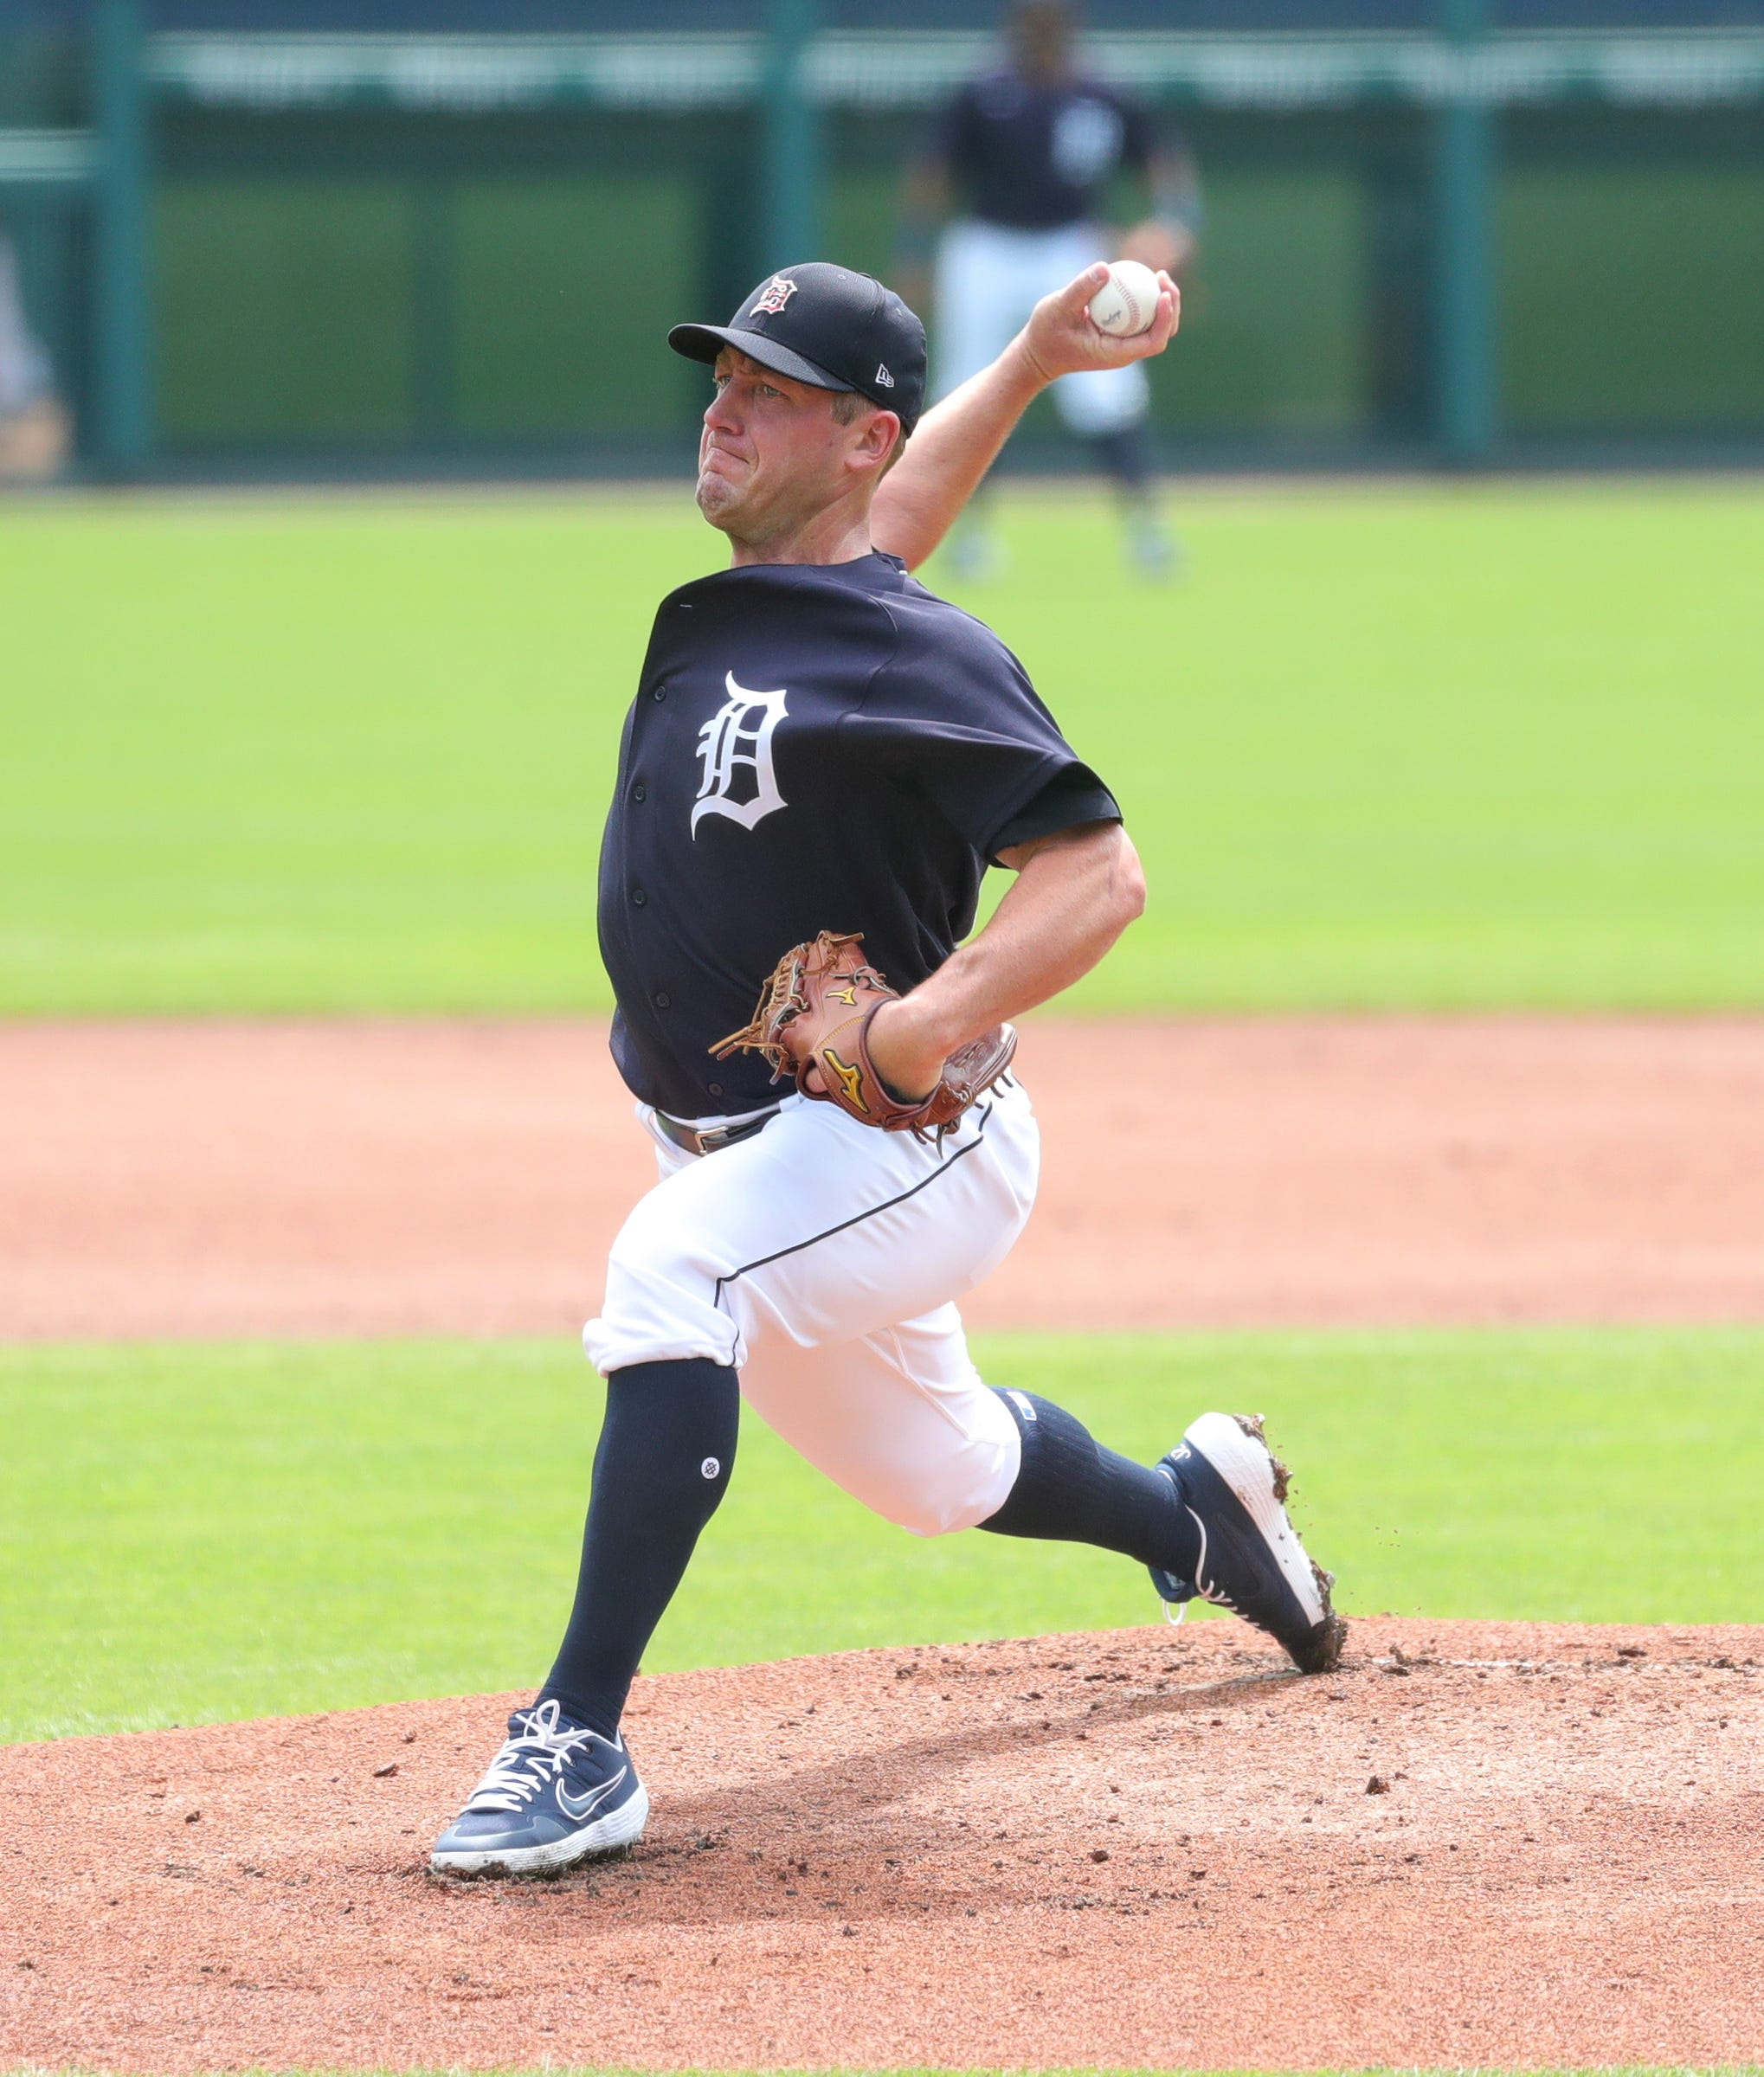 Detroit Tigers' Jordan Zimmermann pitches during an intrasquad scrimmage at Comerica Park, Sunday, July 12, 2020.